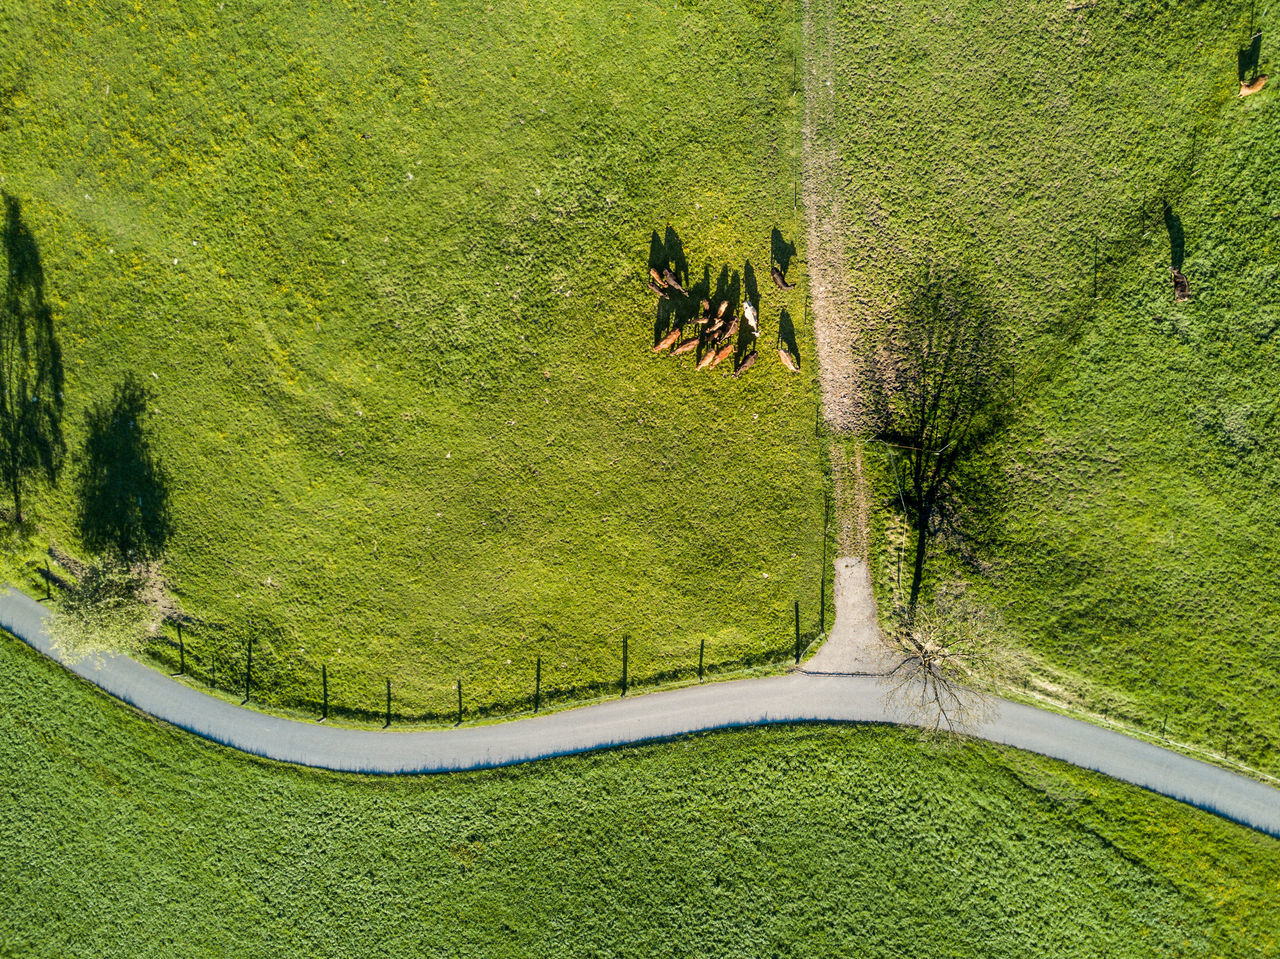 grass, green color, animal themes, high angle view, growth, nature, day, domestic animals, no people, outdoors, landscape, mammal, tree, bird